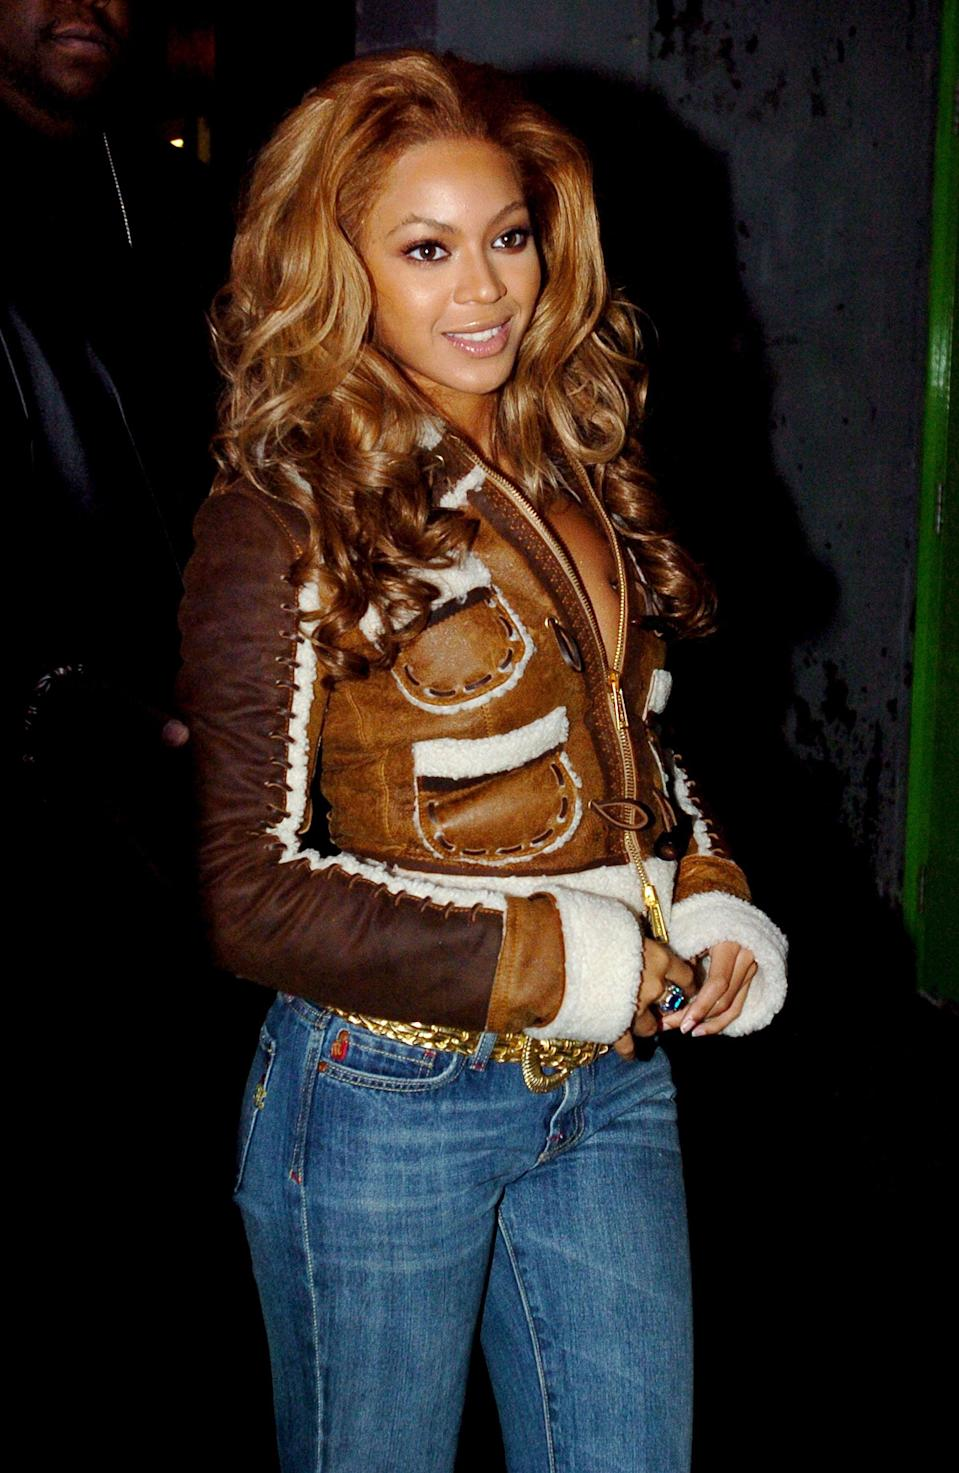 <p>Who wouldn't recognize the little red tab on the side pocket of classic Miss Me jeans? Usually complete with contrast stitching, embroidery, and a distress wash, this denim was for true queens - just like Queen B.</p>